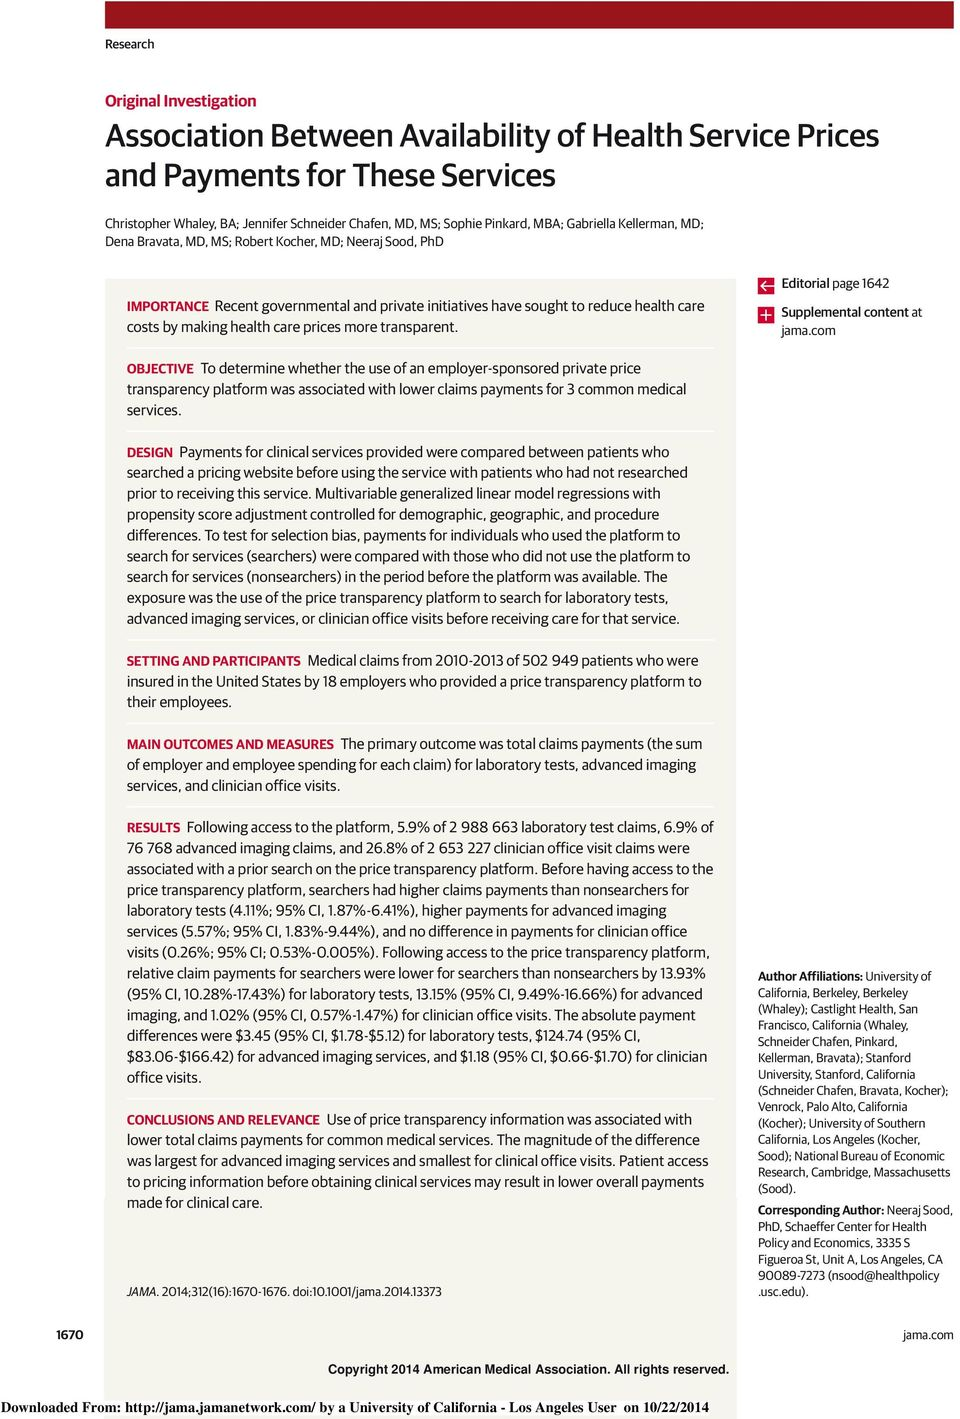 care prices more transparent. Editorial page 1642 Supplemental content at jama.